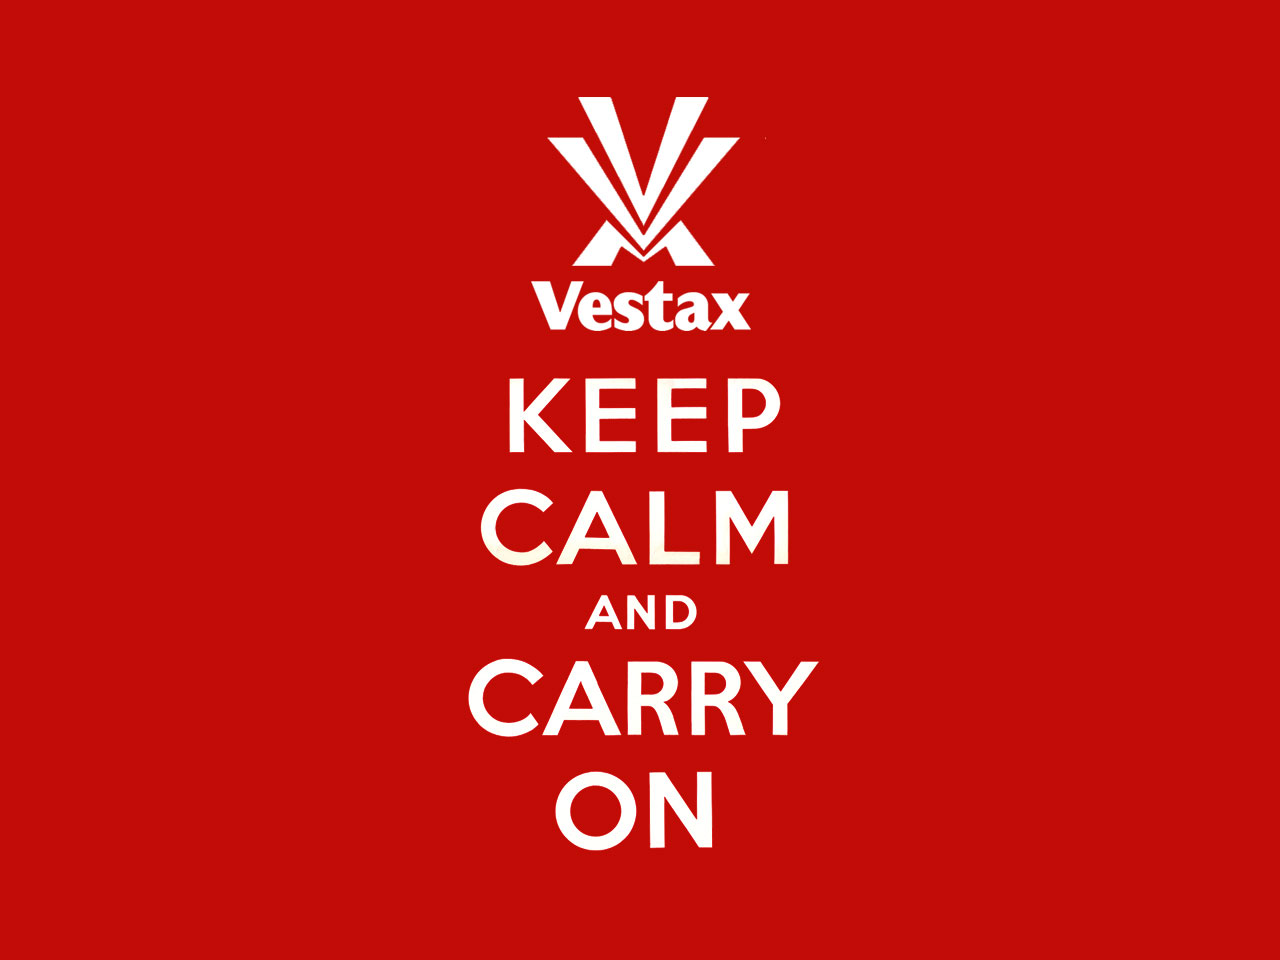 vestax-keep-calm-and-carry-on